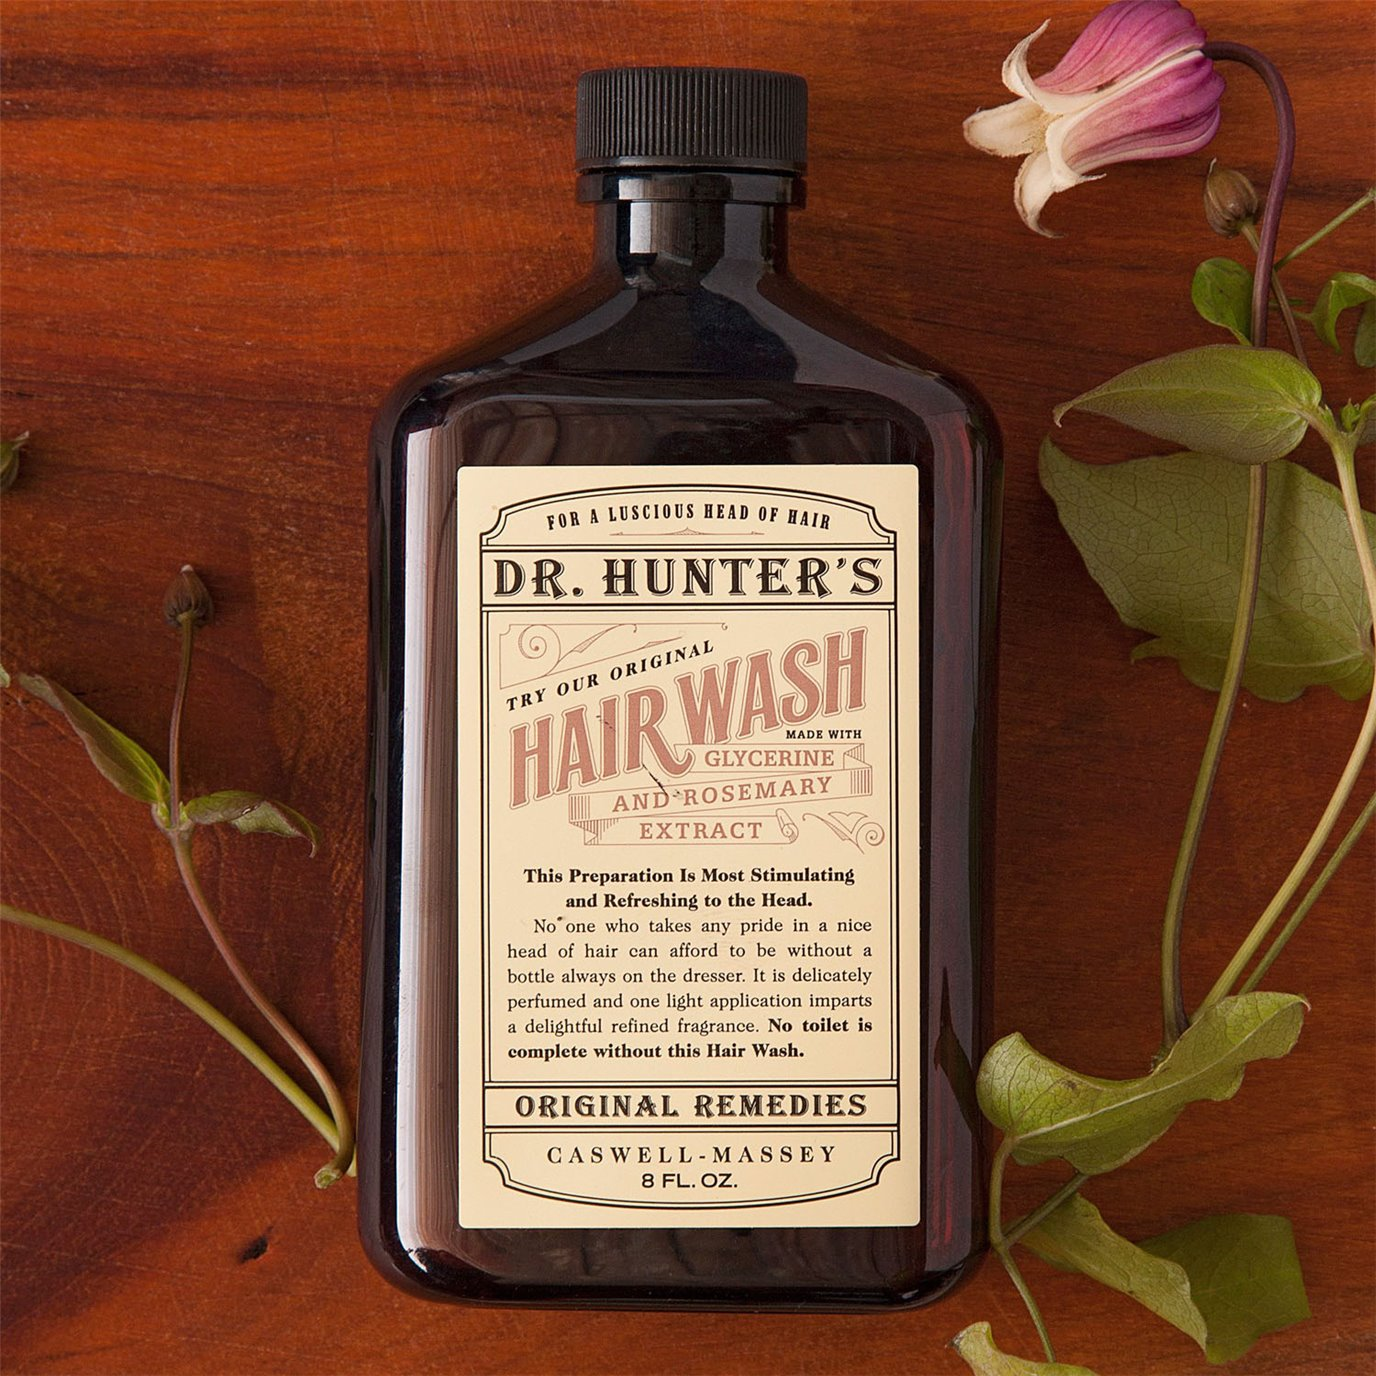 Caswell-Massey Dr. Hunter Hair Wash